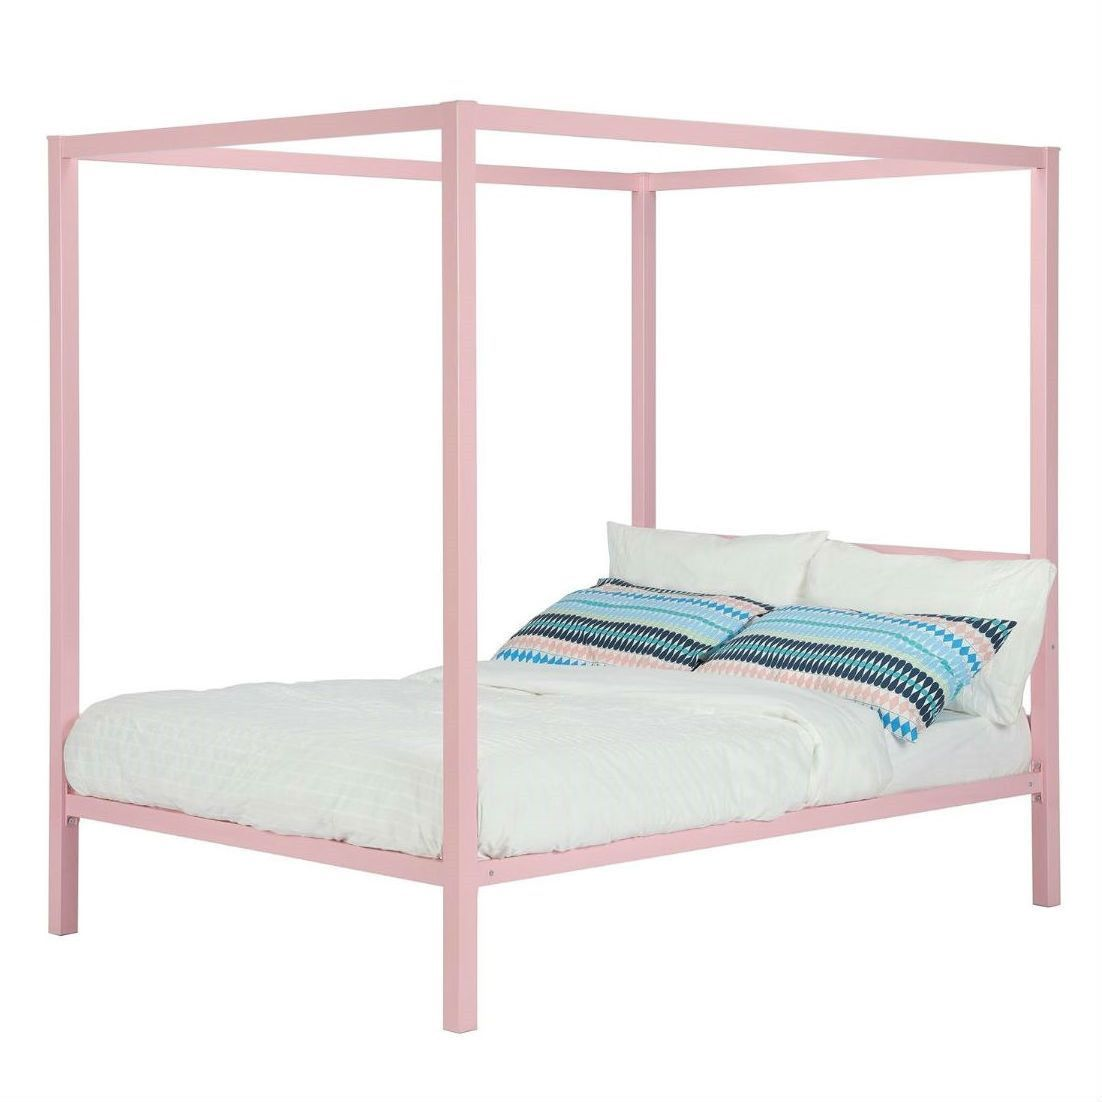 Kids twin bed frame - Twin Size Metal Platform Canopy Bed Frame In Pink Great For Kids Girls Teens